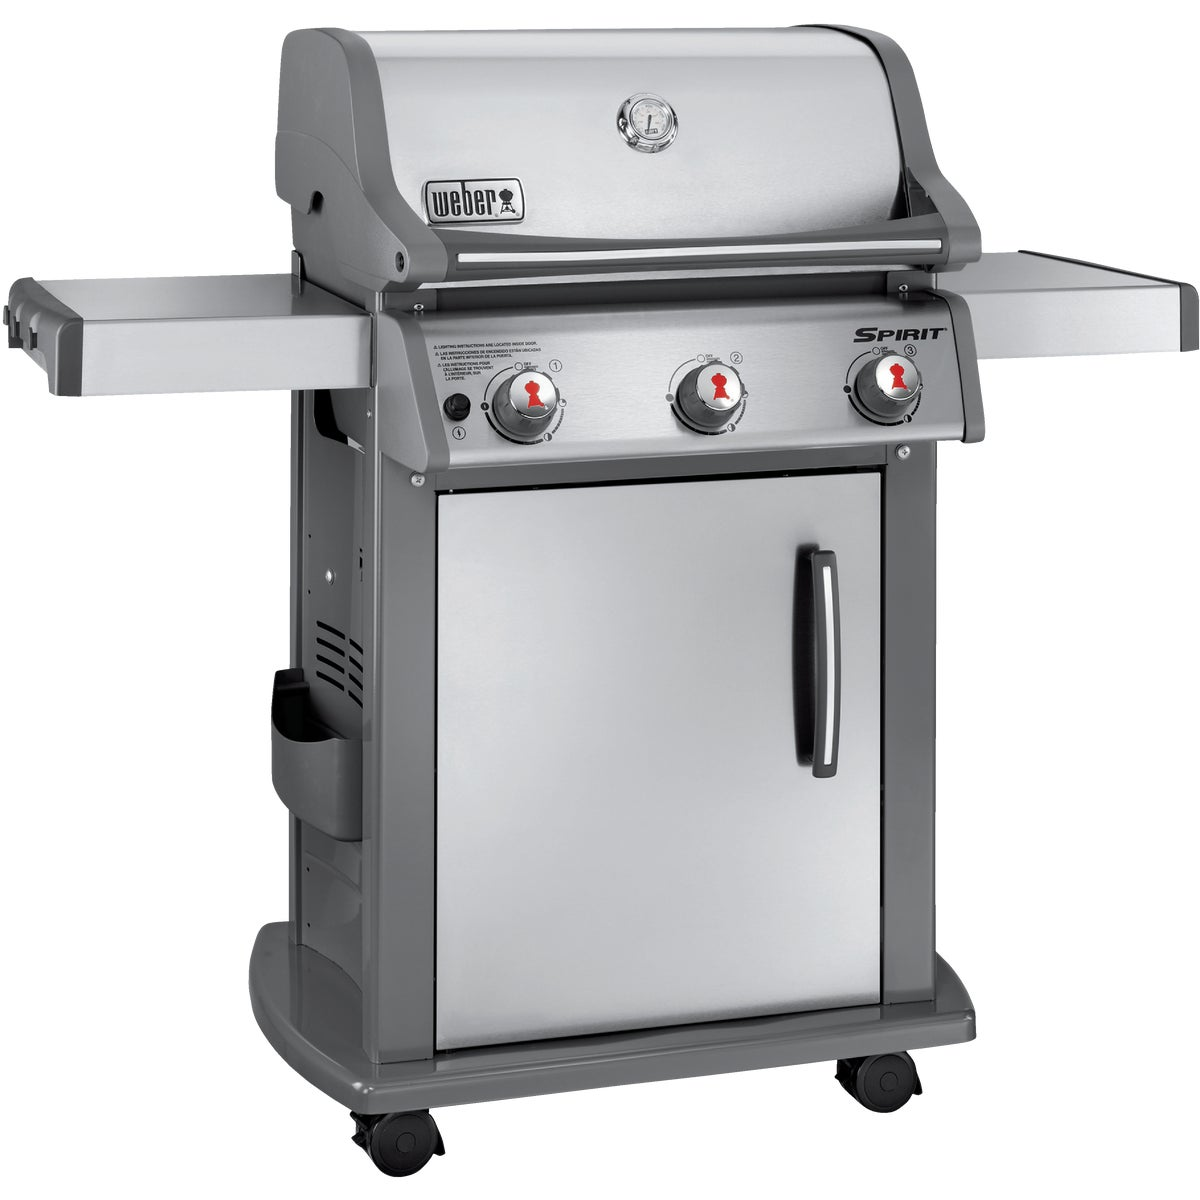 SP310 LP SS SPIRIT GRILL - 46500401 by Weber